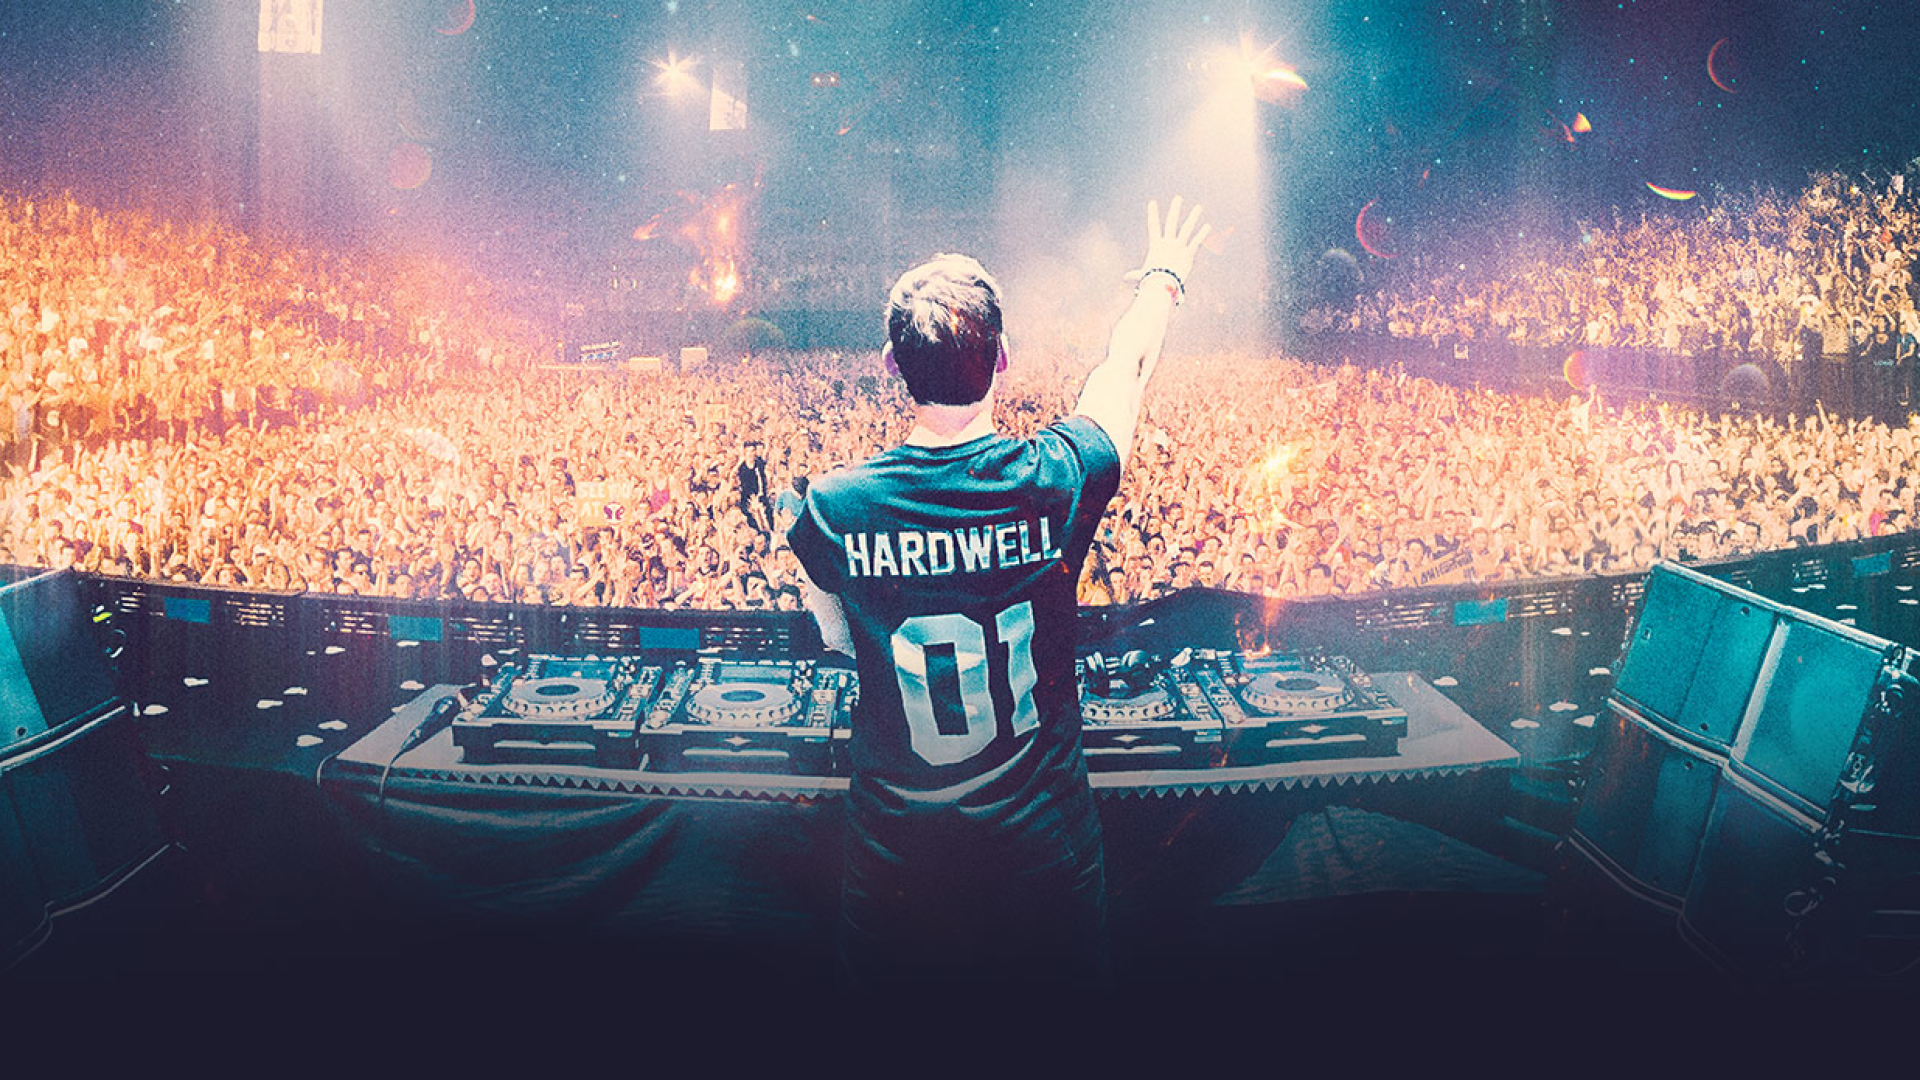 martin garrix wallpaper hd for iphone